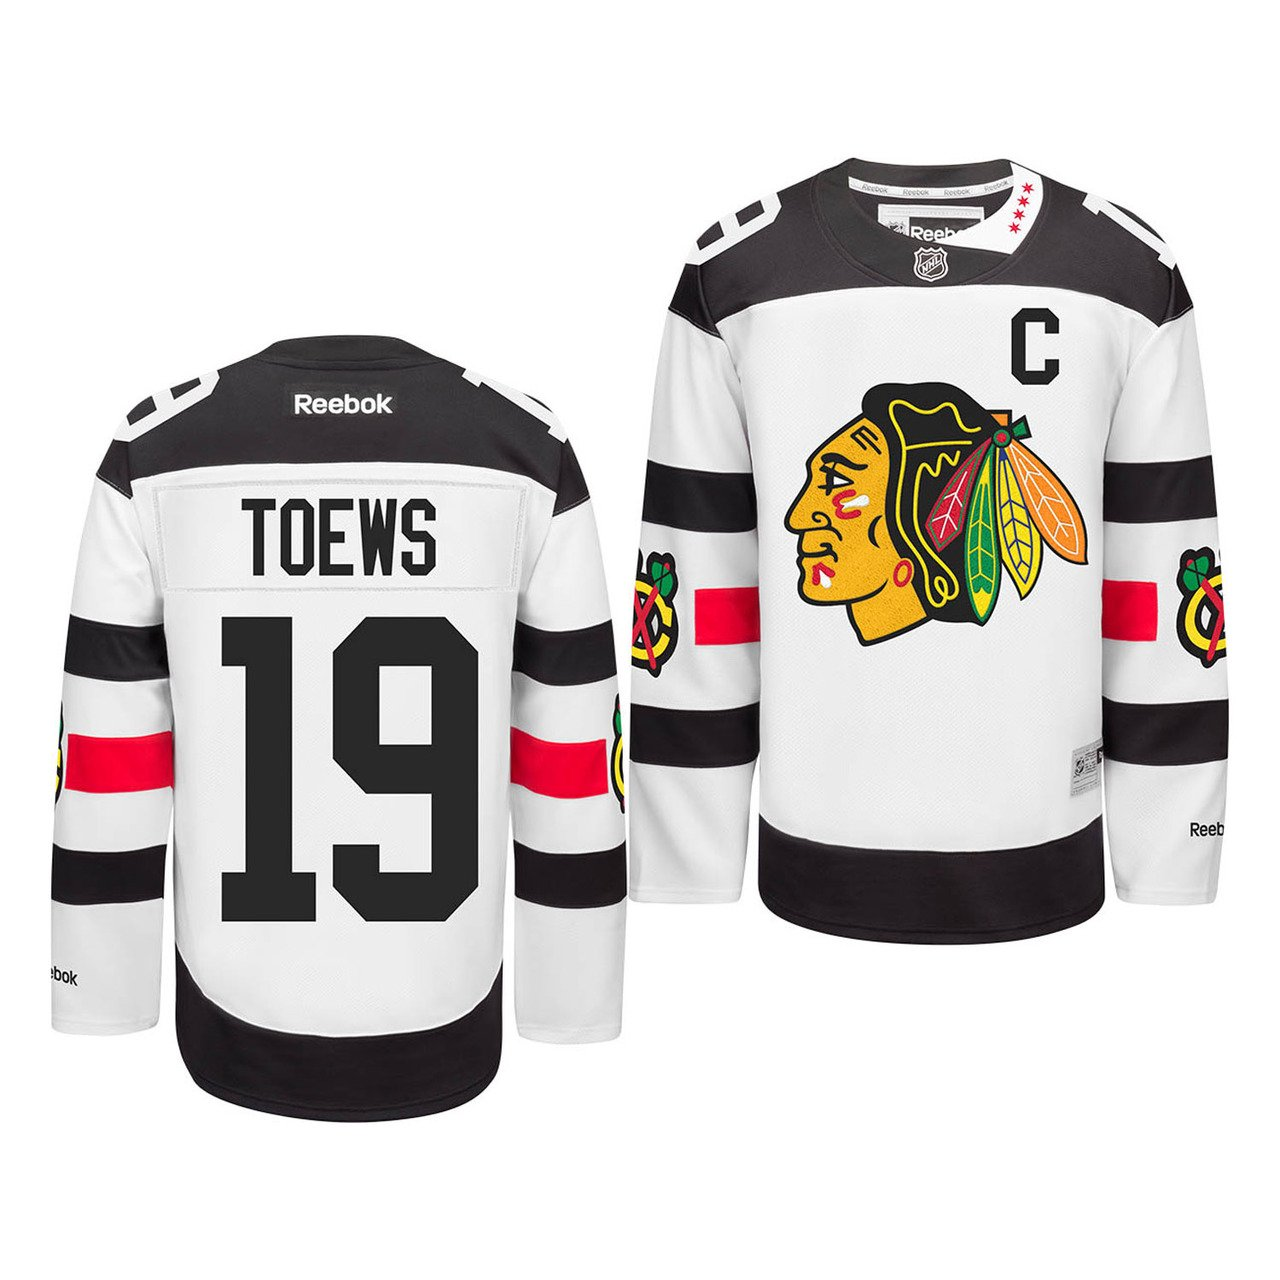 a111ac2b406 closeout jonathan toews chicago blackhawks 2016 stadium series premier  jersey by reebok hot sale dbfeb 8b8d4